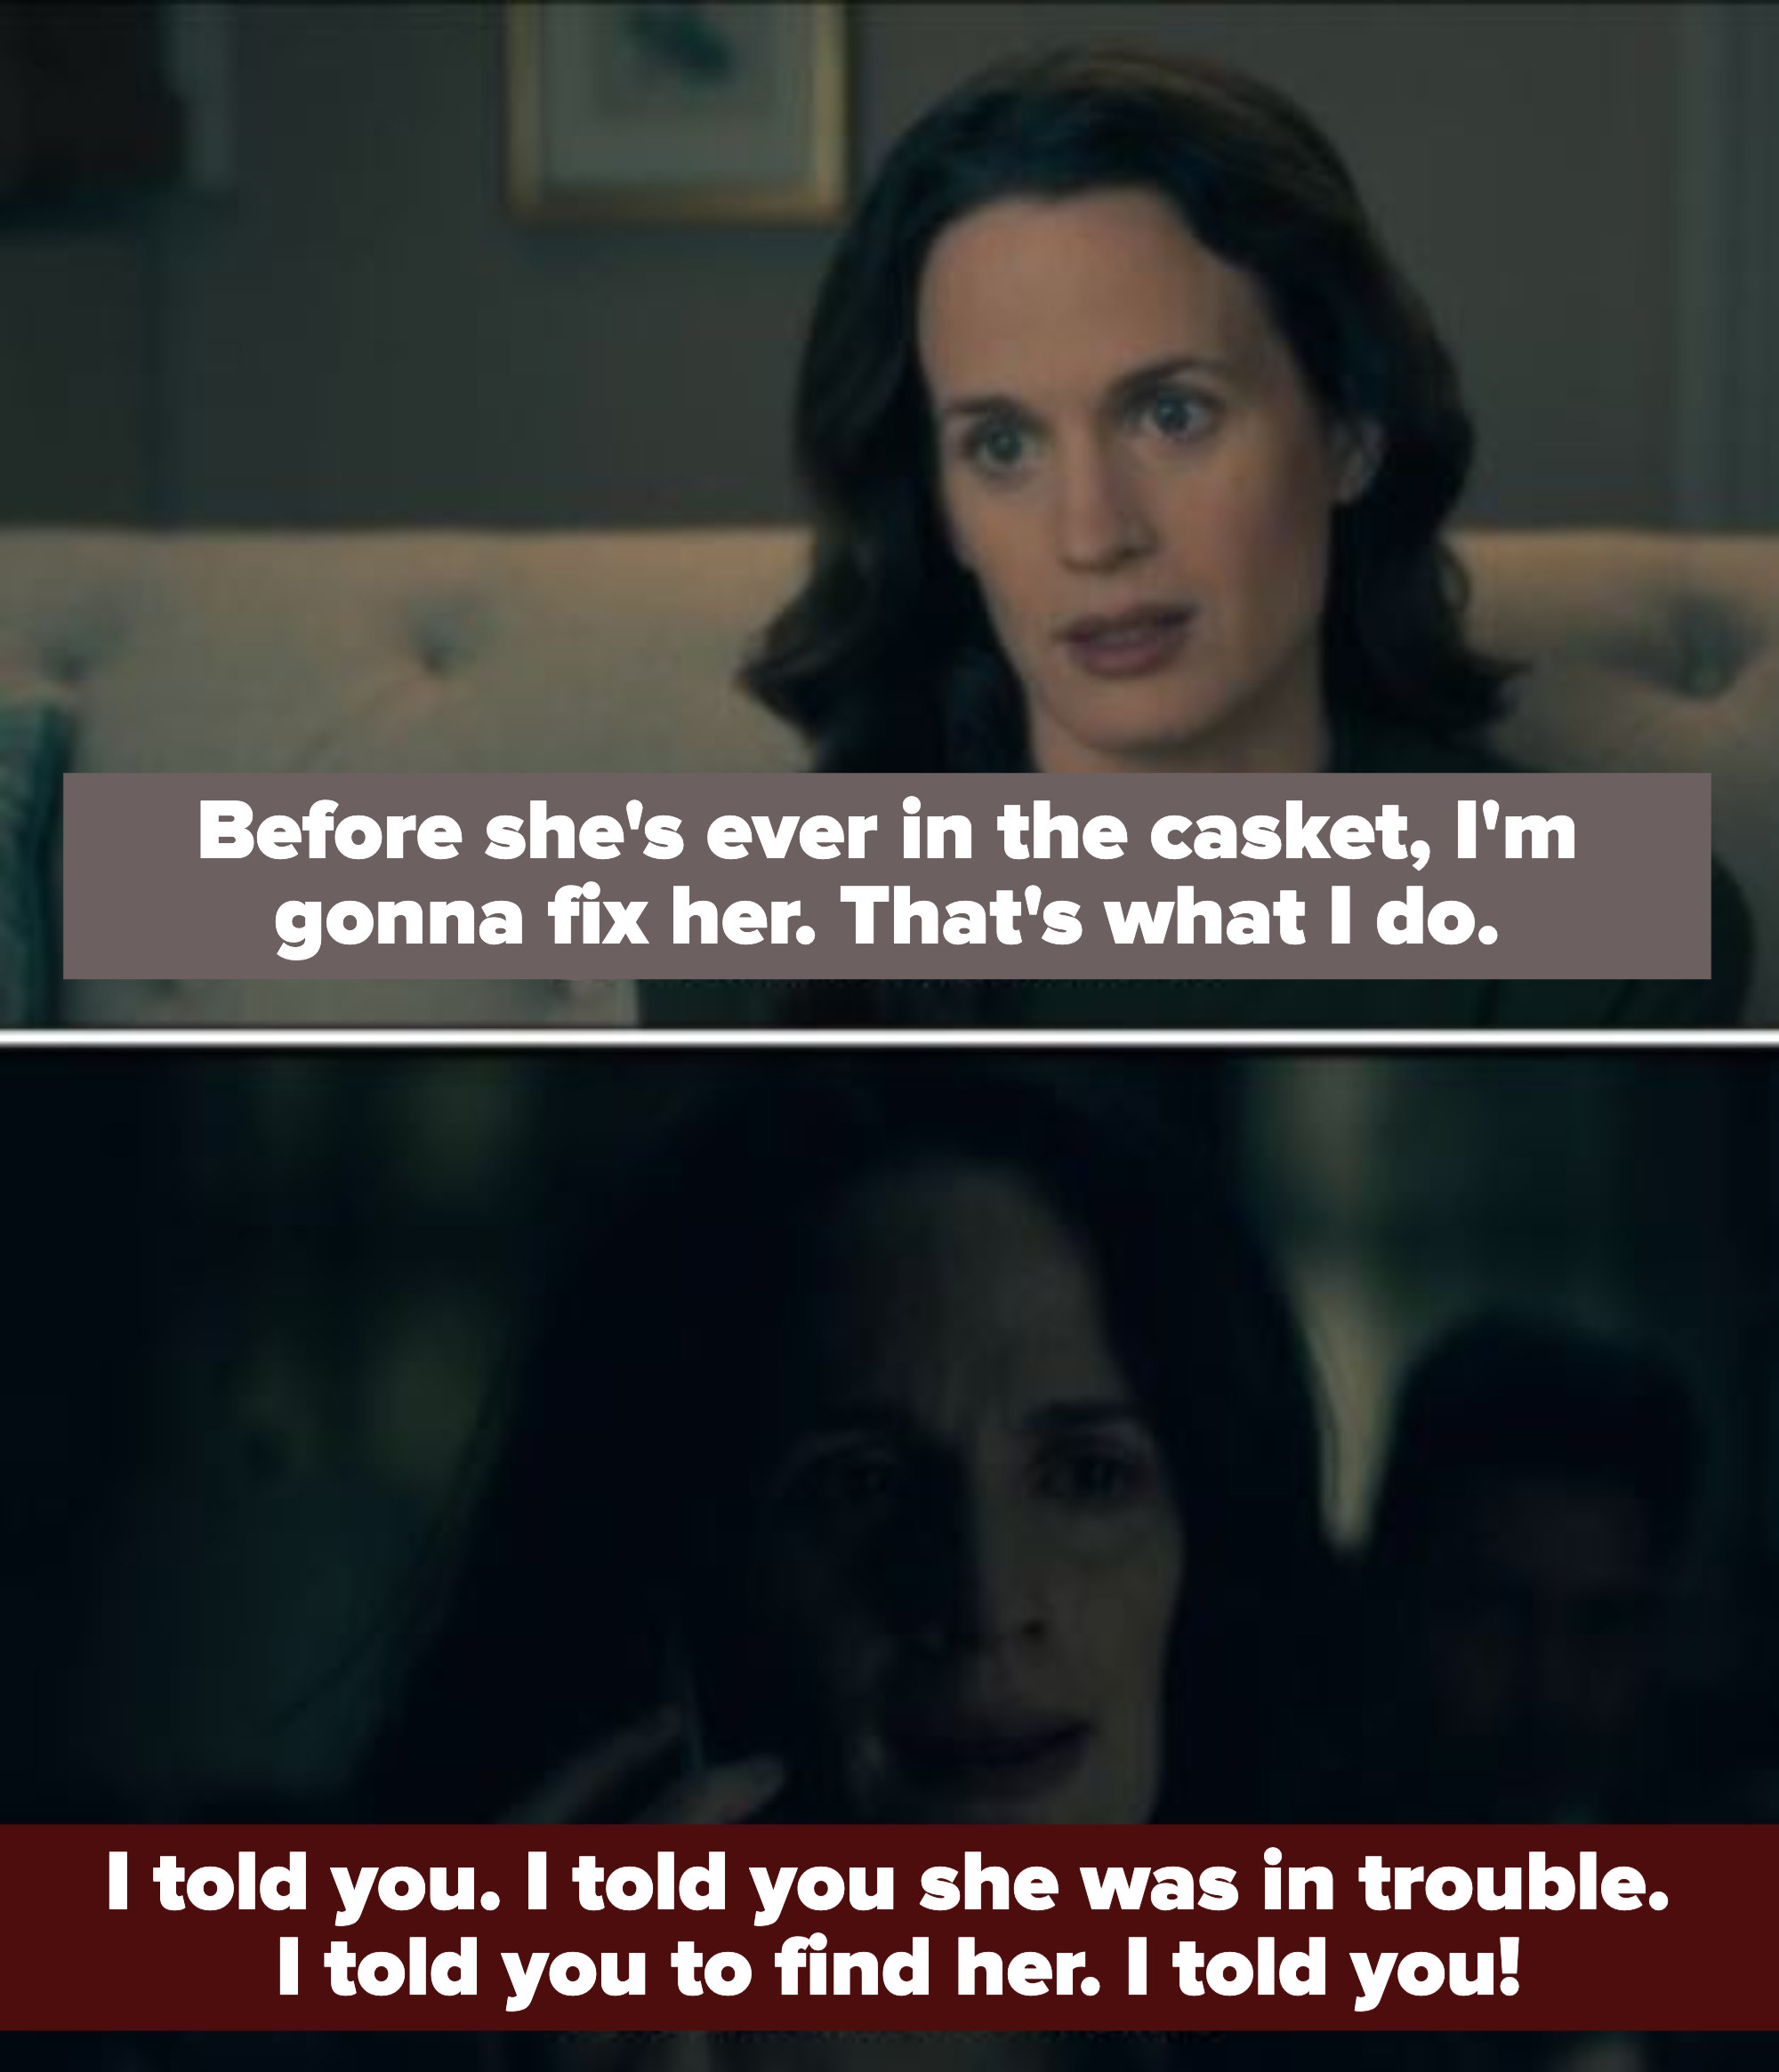 """shirley says """"before she's ever in the casket i'm gonna fix her. what's what i do"""" (referring to nell). then in another scene she says """"i told you she was in trouble, i told you to find her. i told you!"""""""